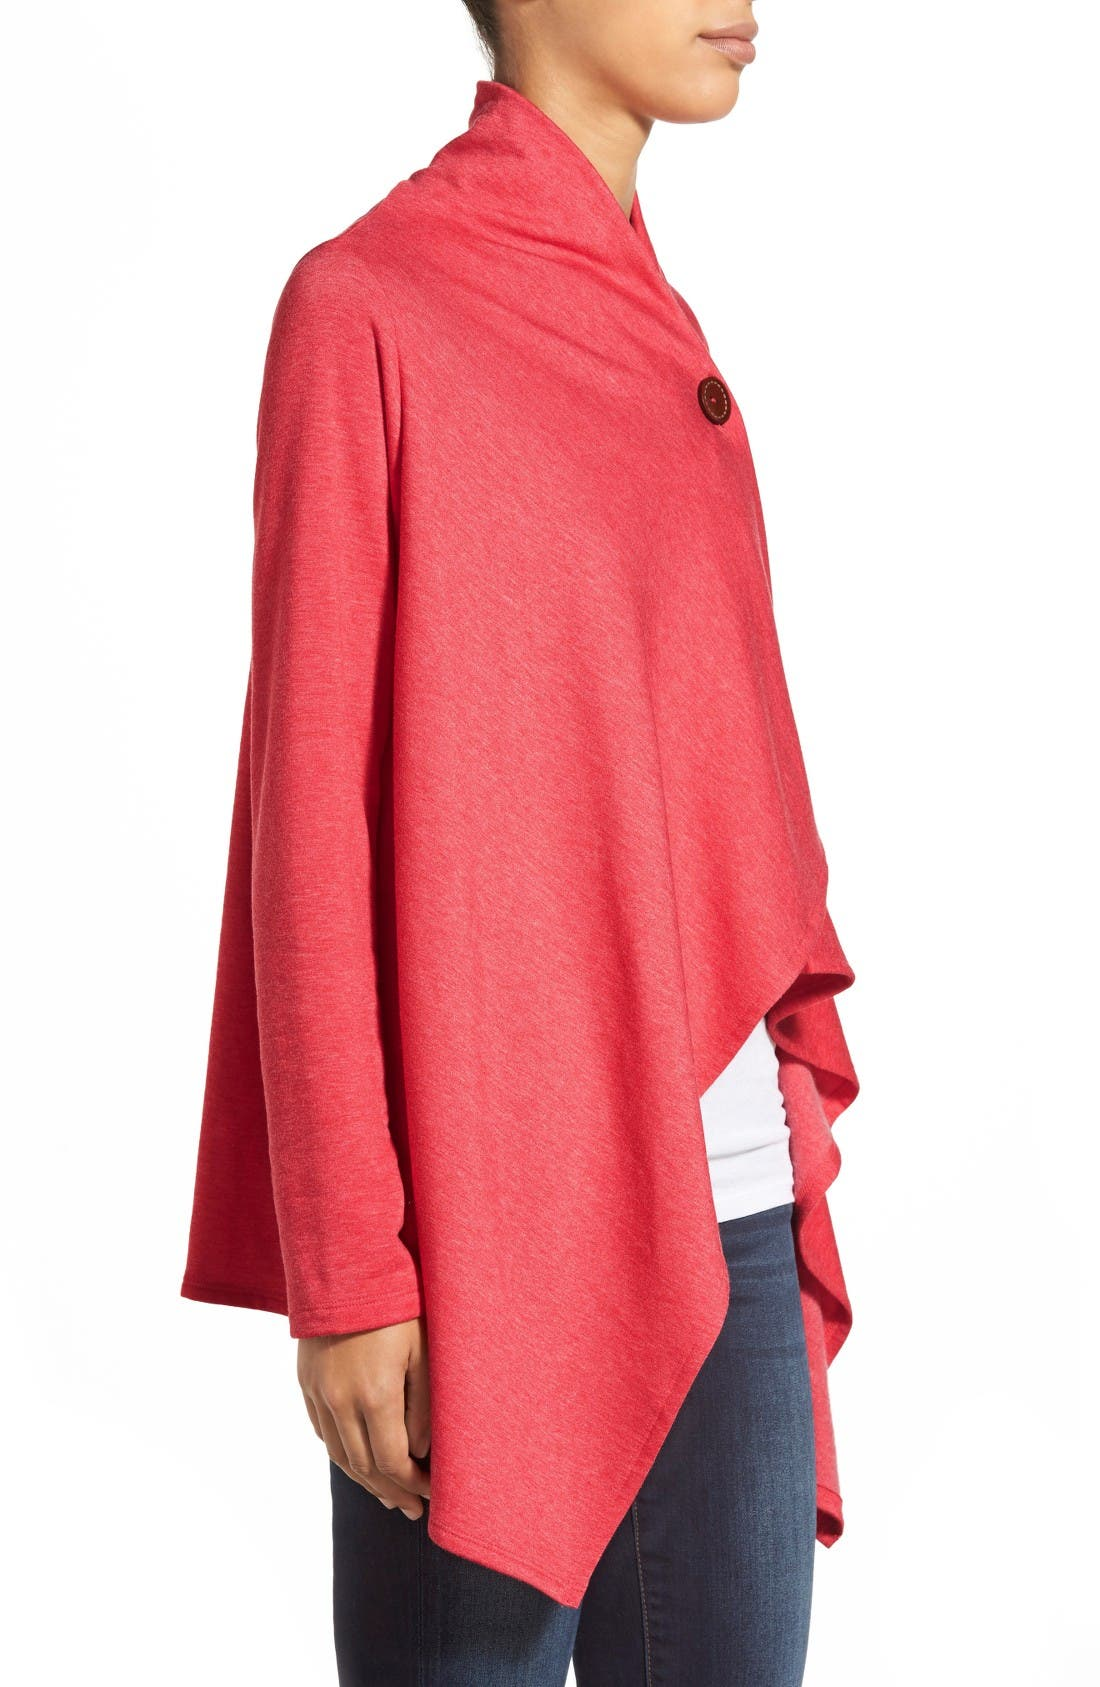 Alternate Image 3  - Bobeau One-Button Fleece Wrap Cardigan (Regular & Petite)